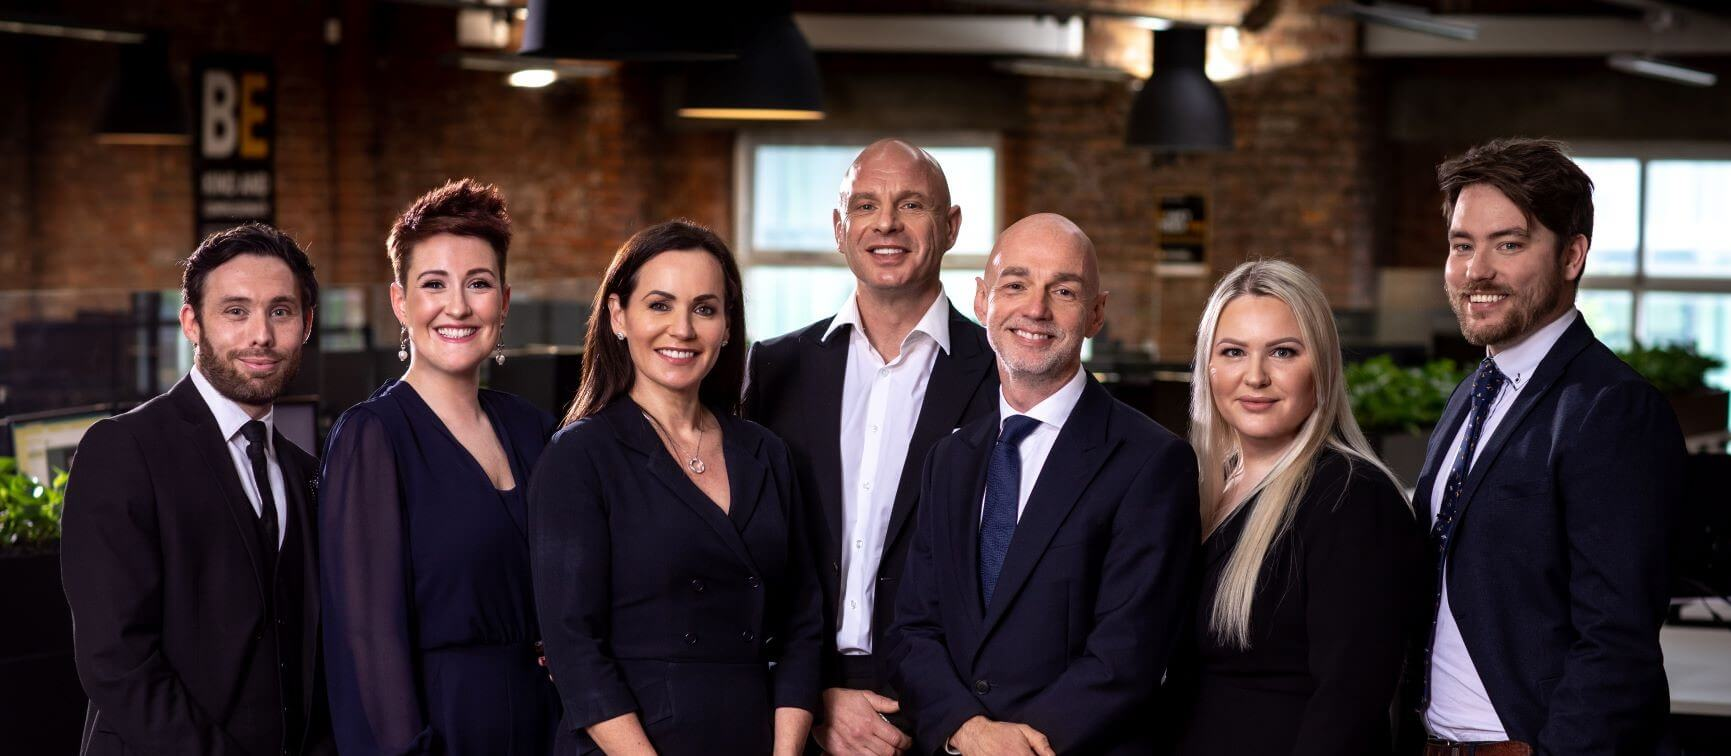 Beyond Group's specialist Family and Corporate practices promote four key individuals